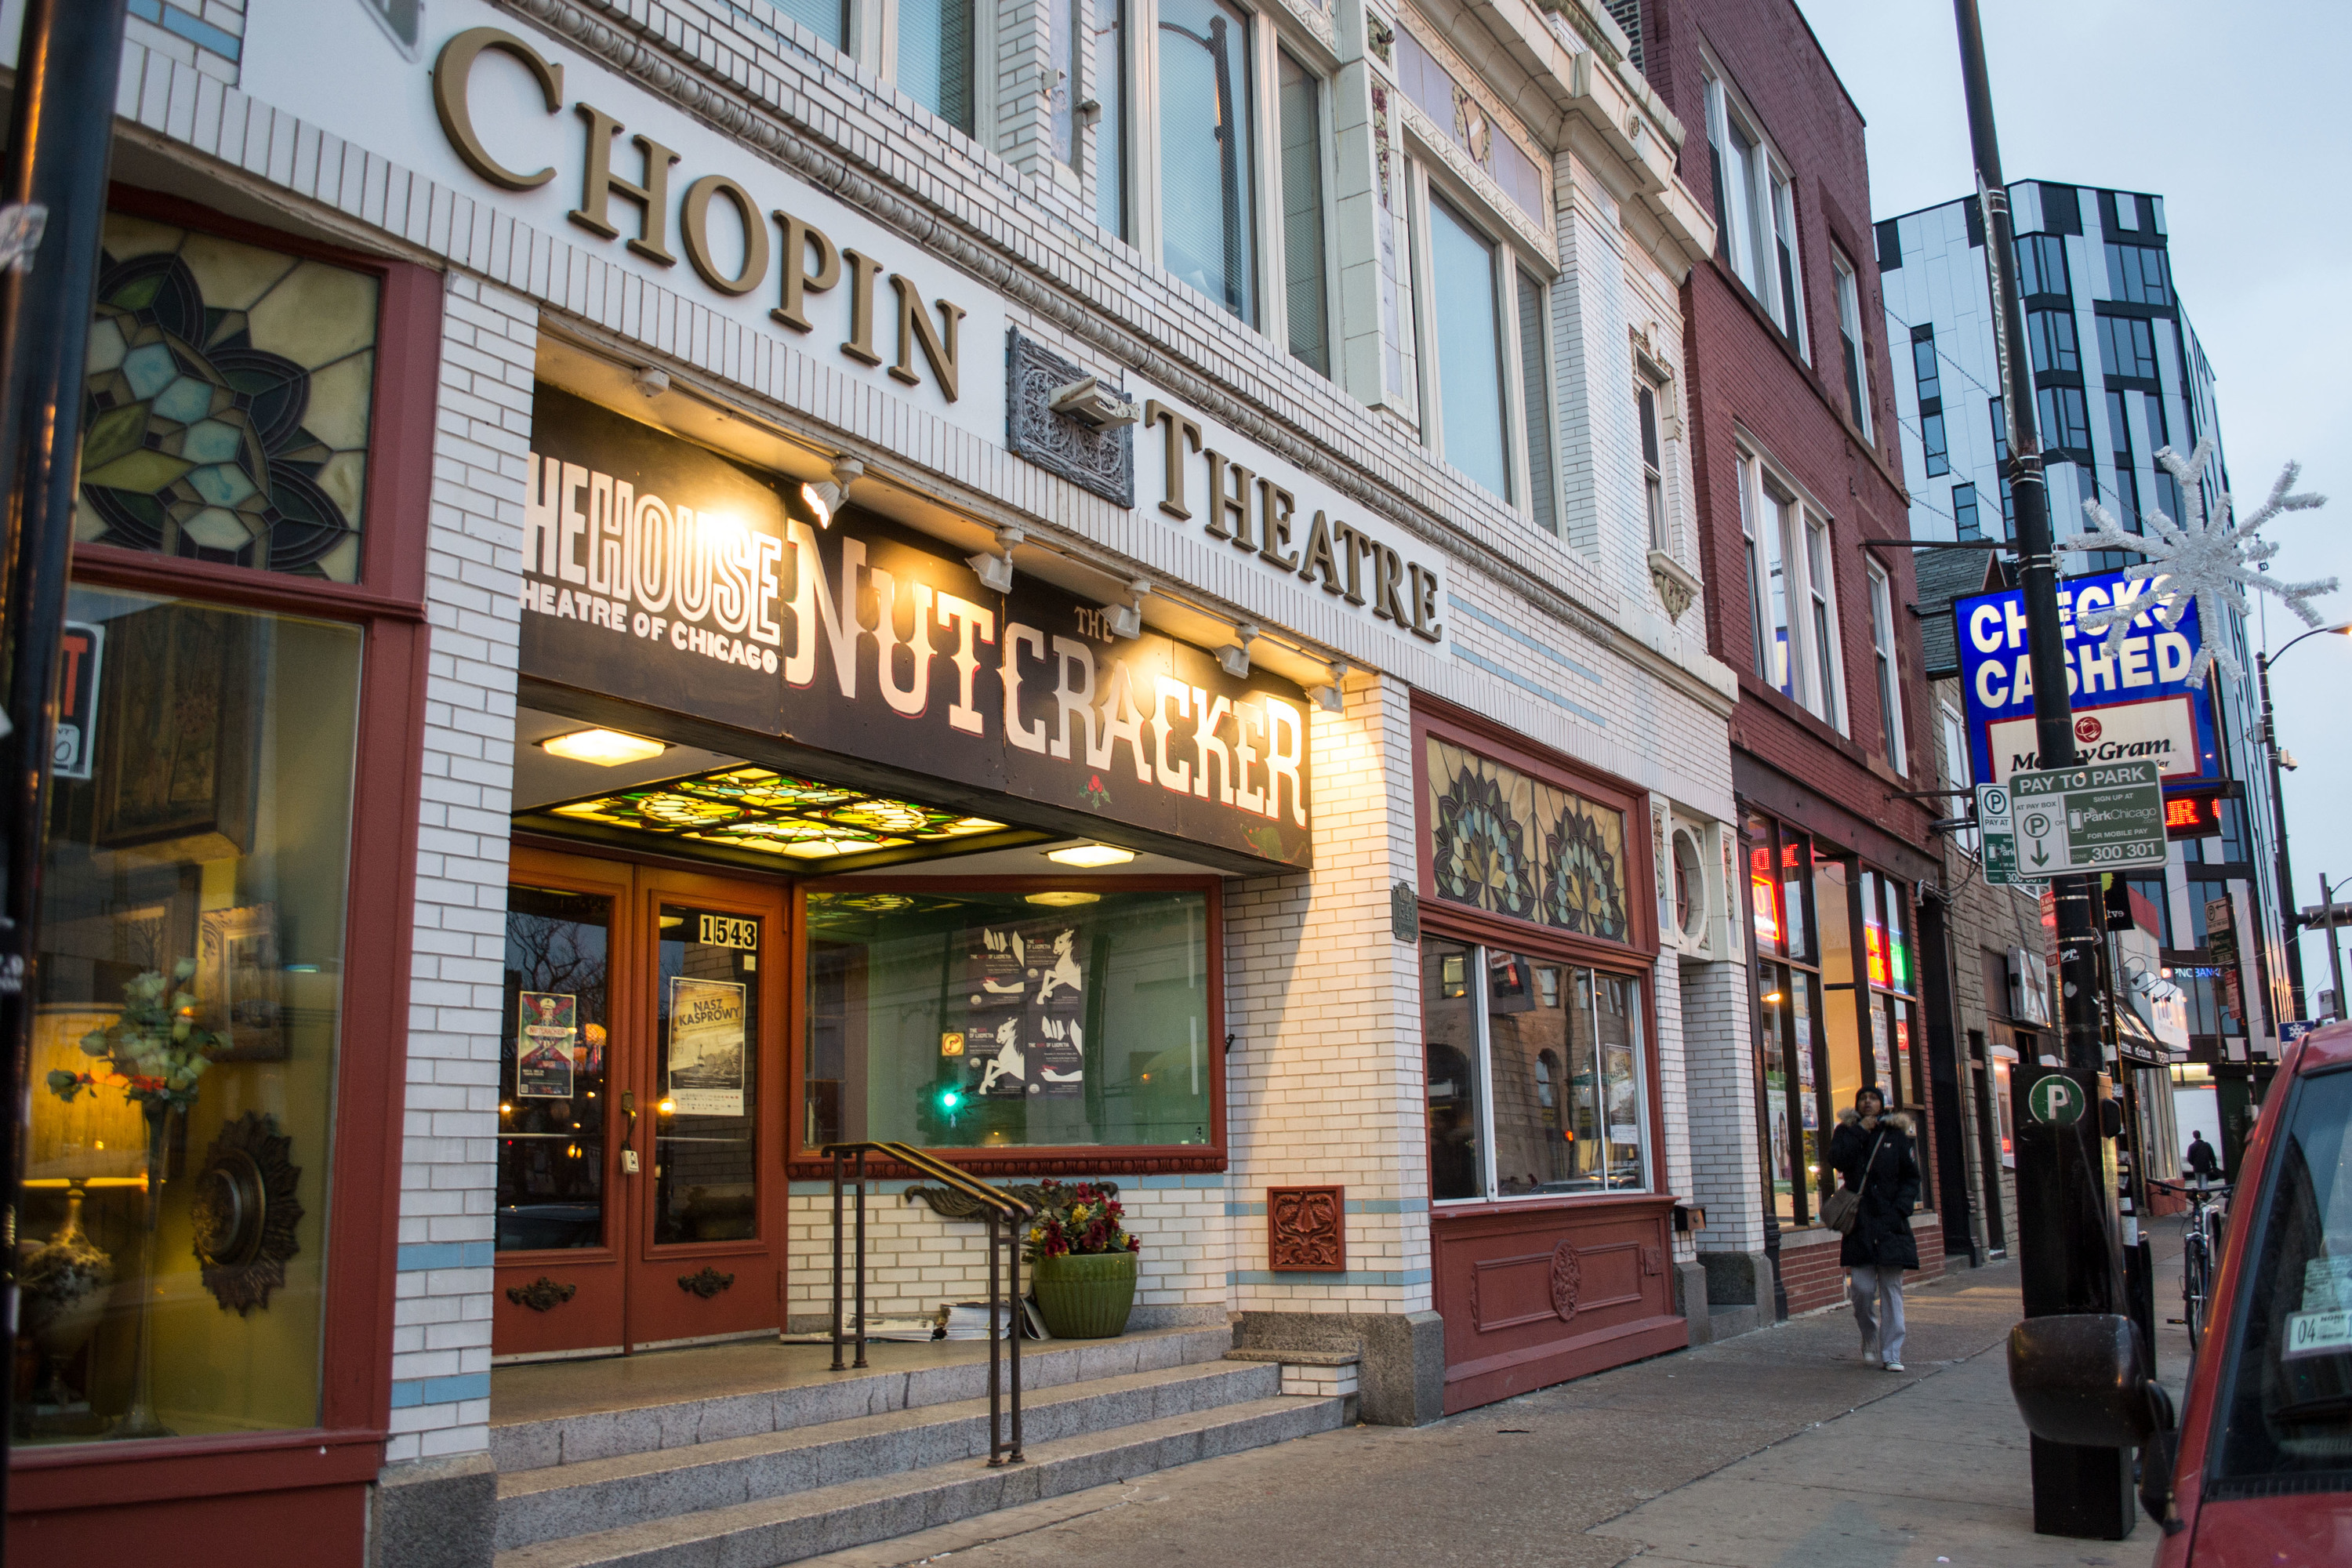 WEST TOWN: Chopin Theatre